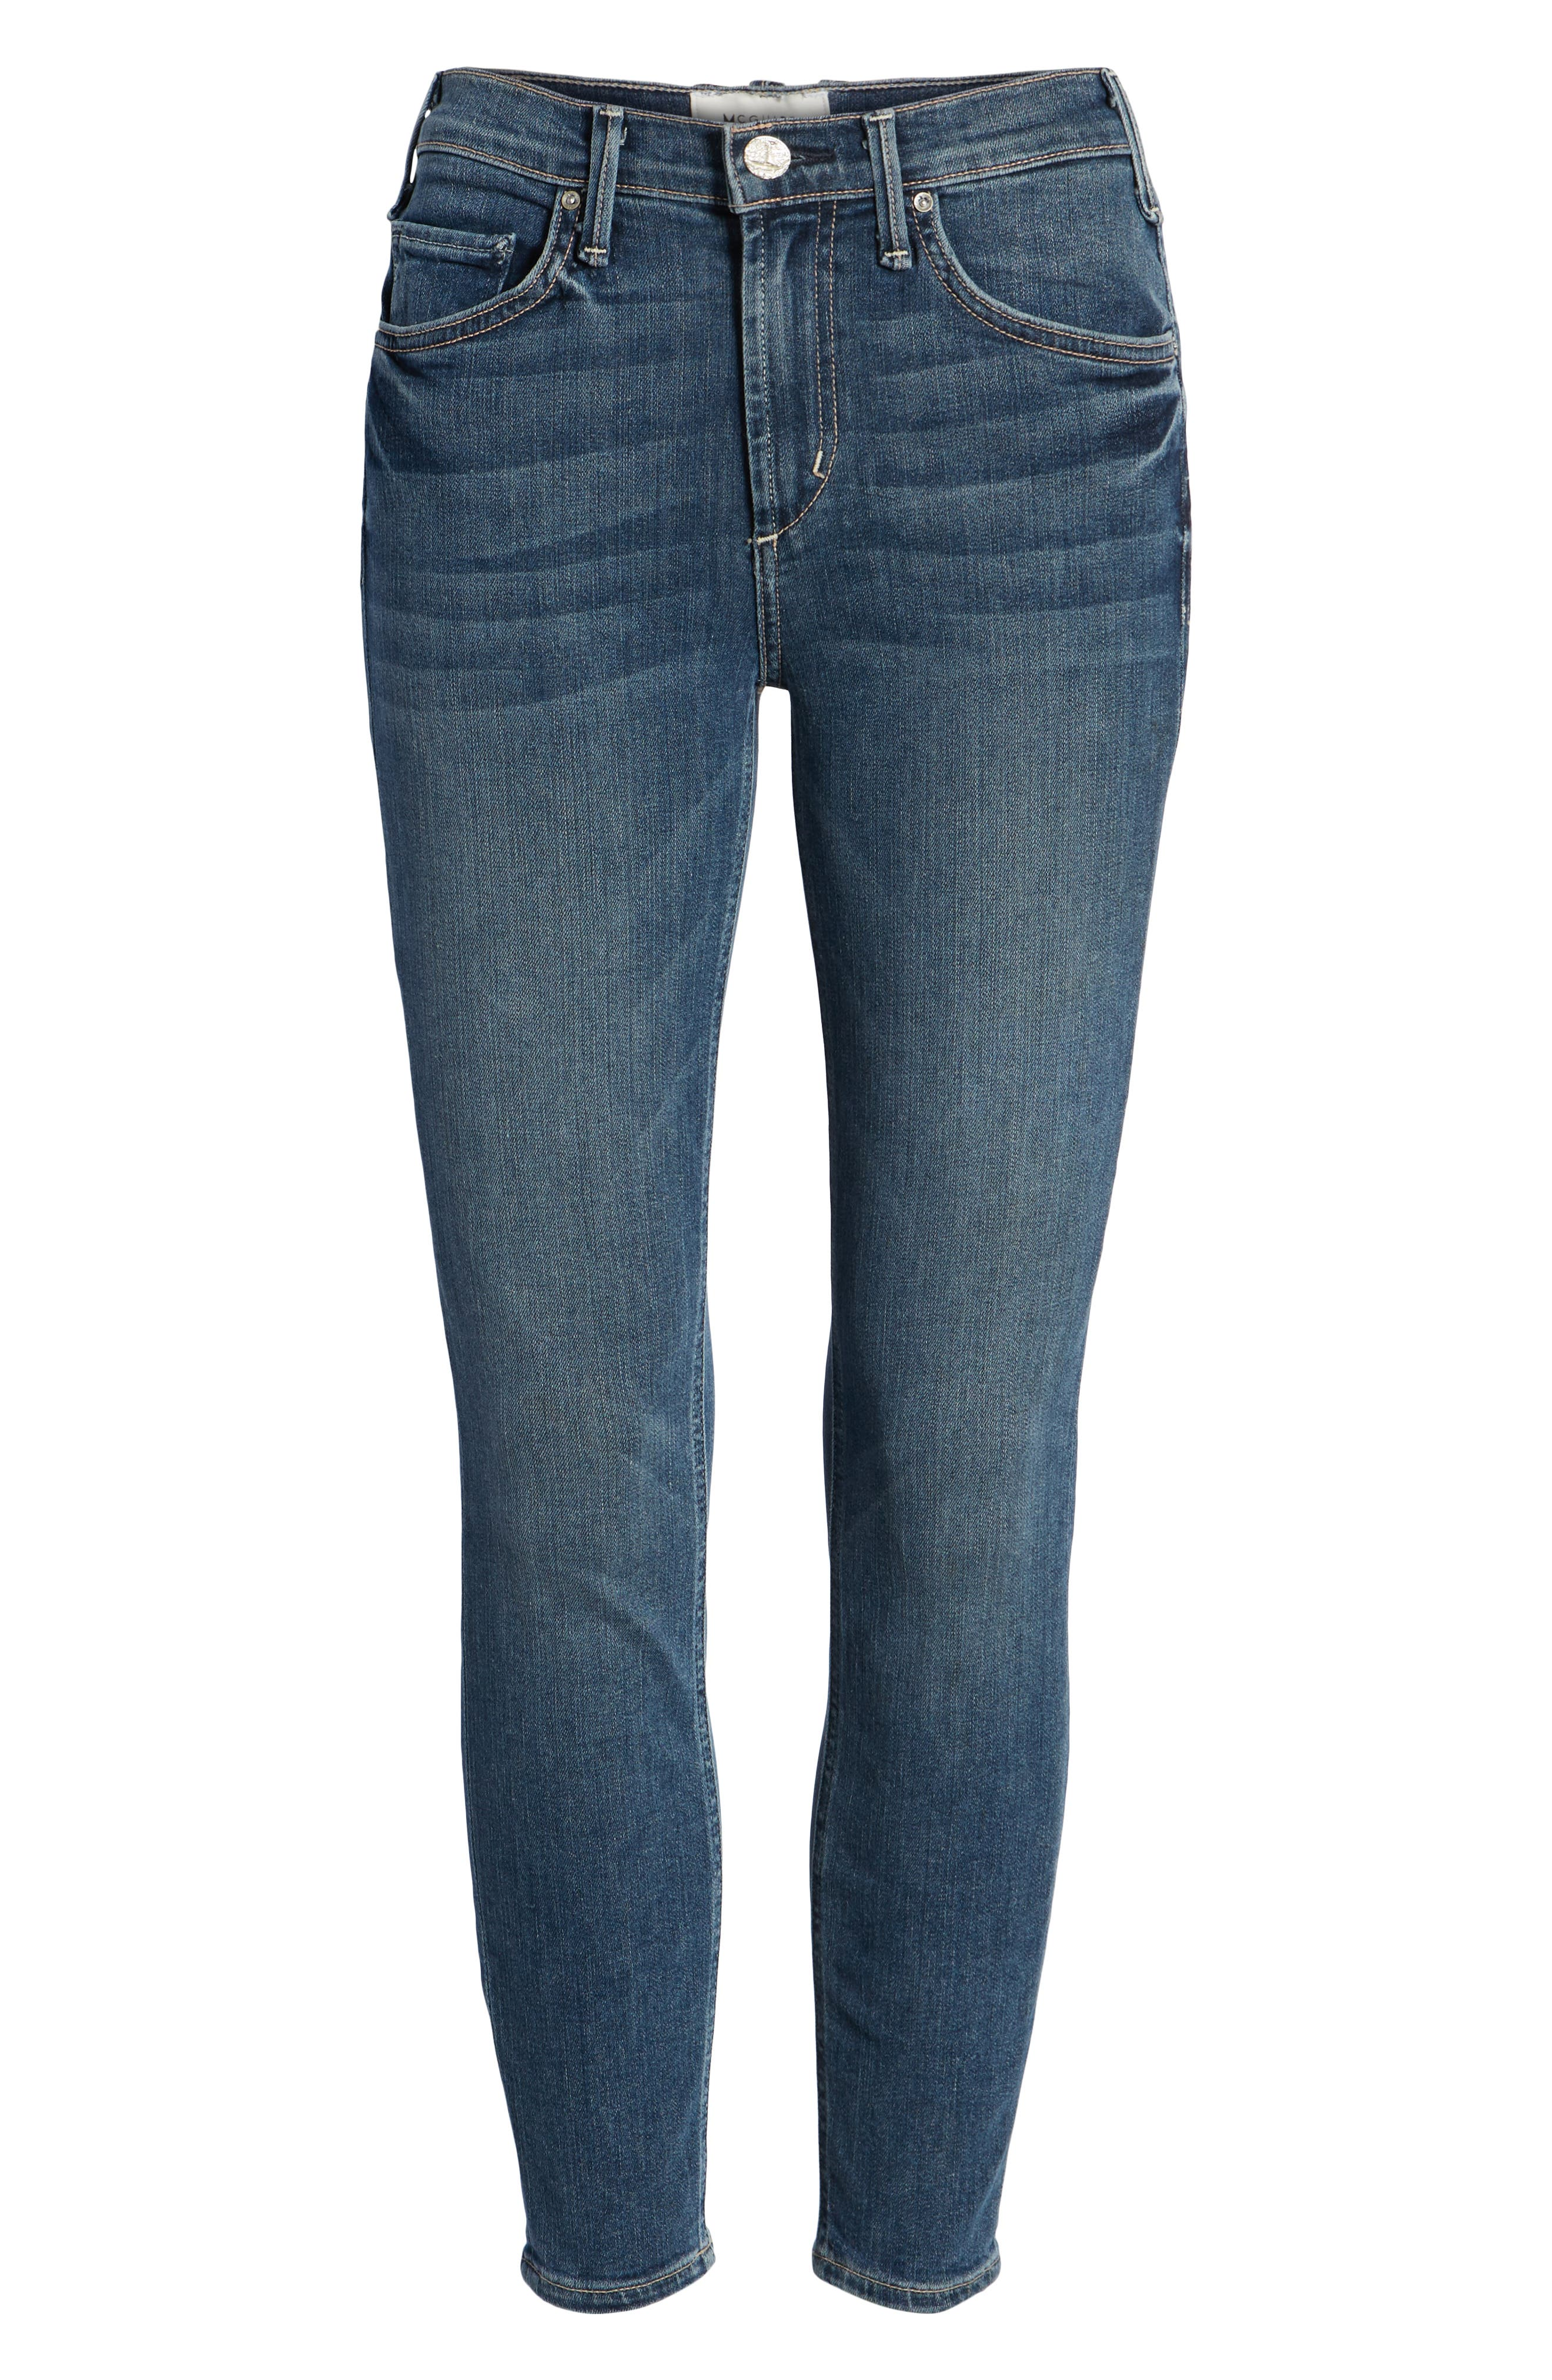 Newton Crop Skinny Jeans,                             Alternate thumbnail 7, color,                             BARTHELEMY GARDENS